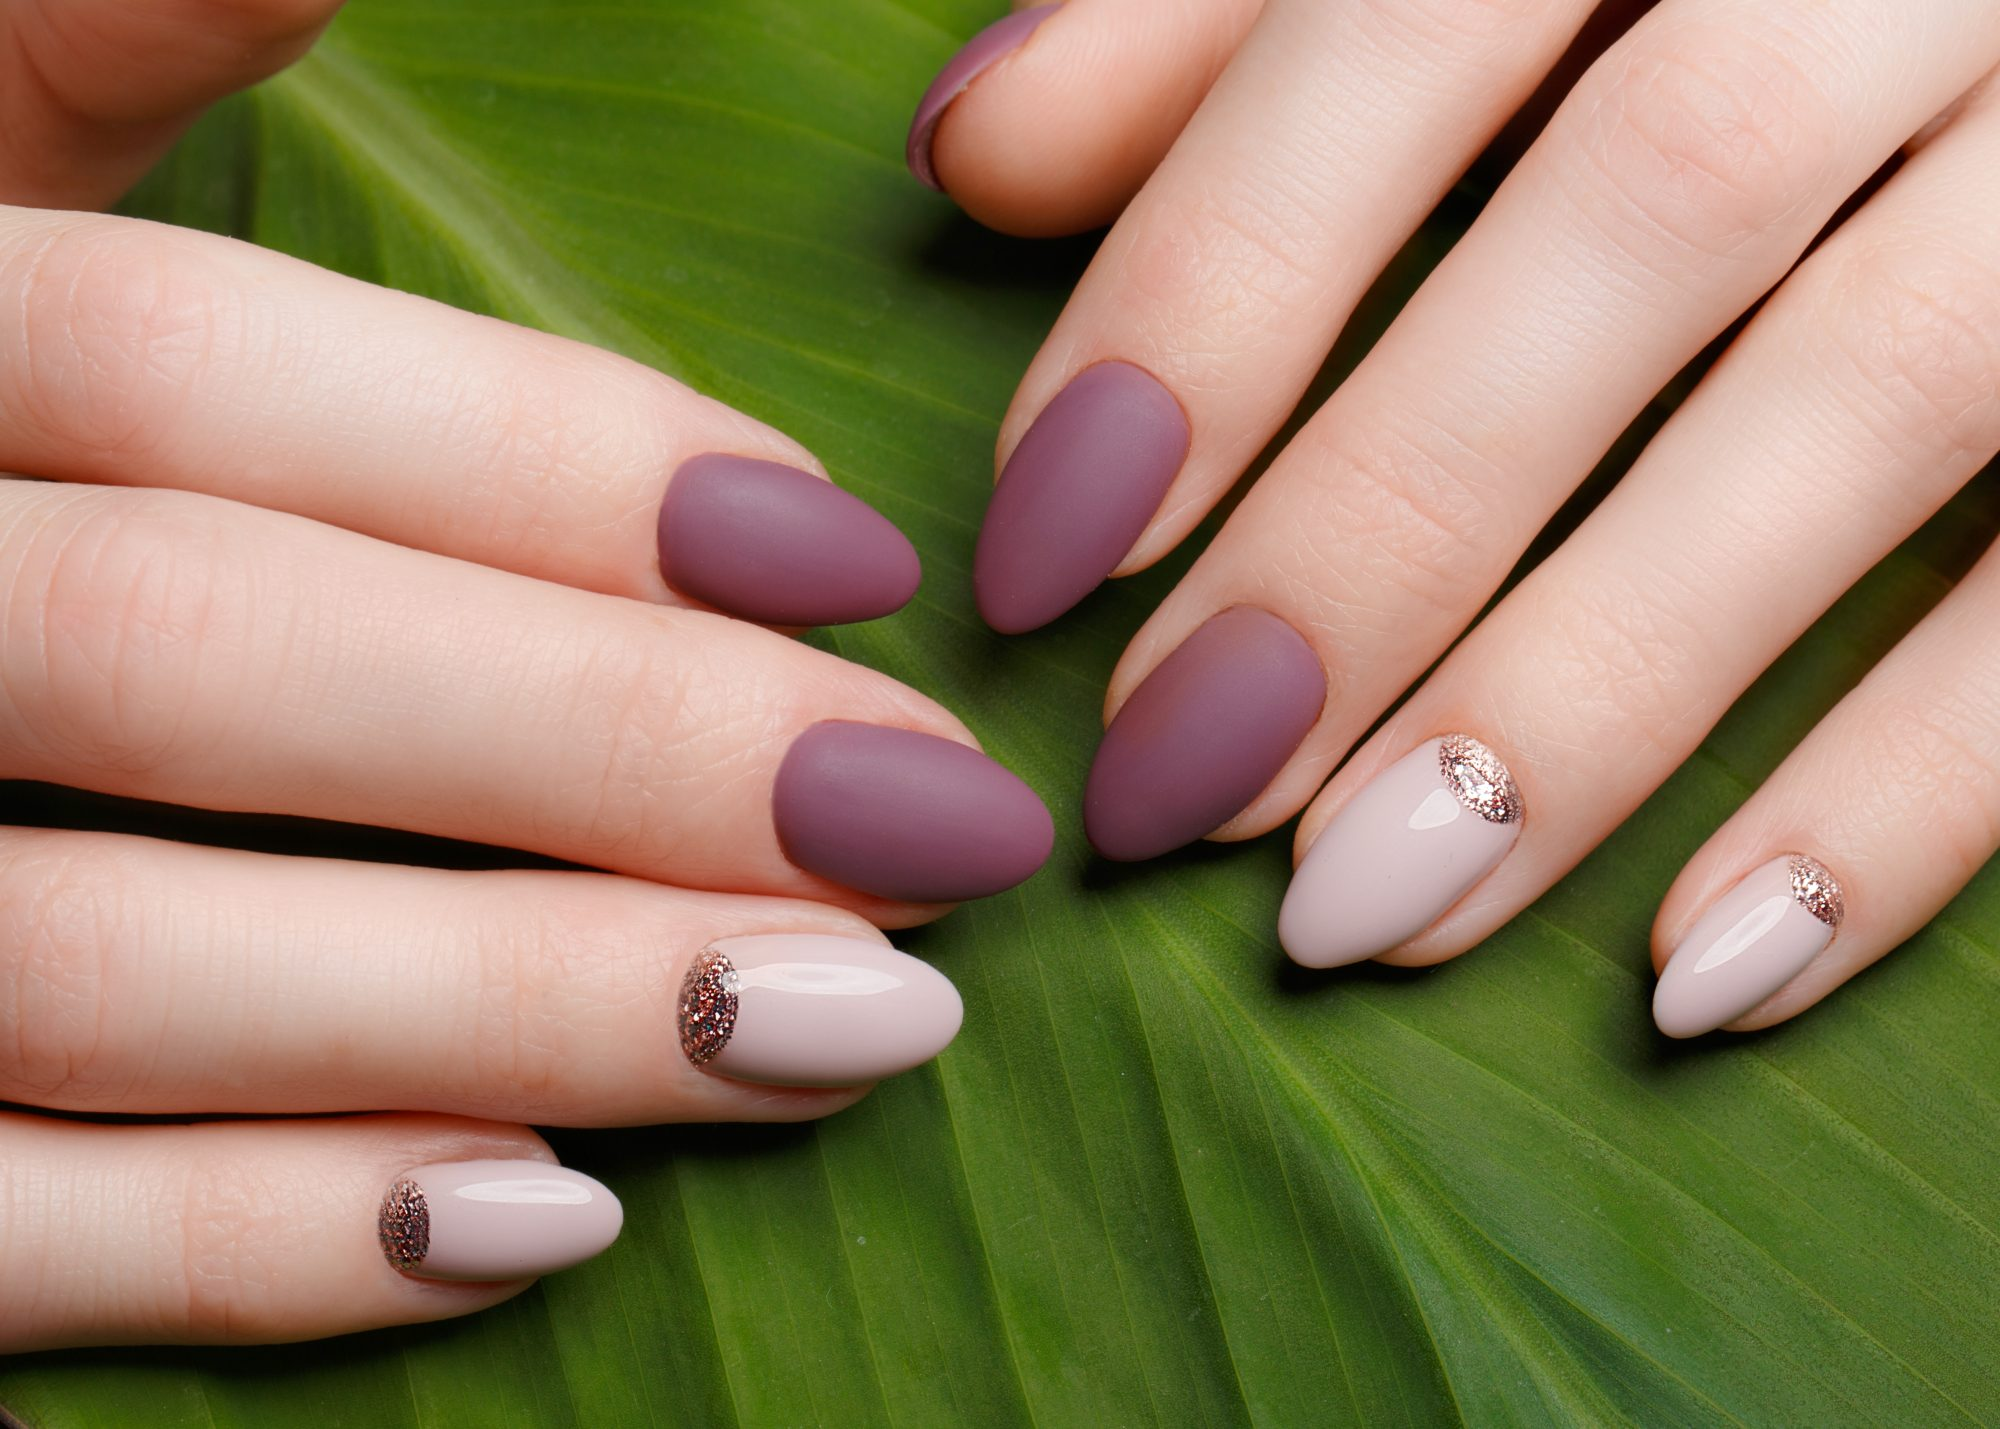 quick-dry-nail-polishes: neat manicure on female hands on a background of green leaves